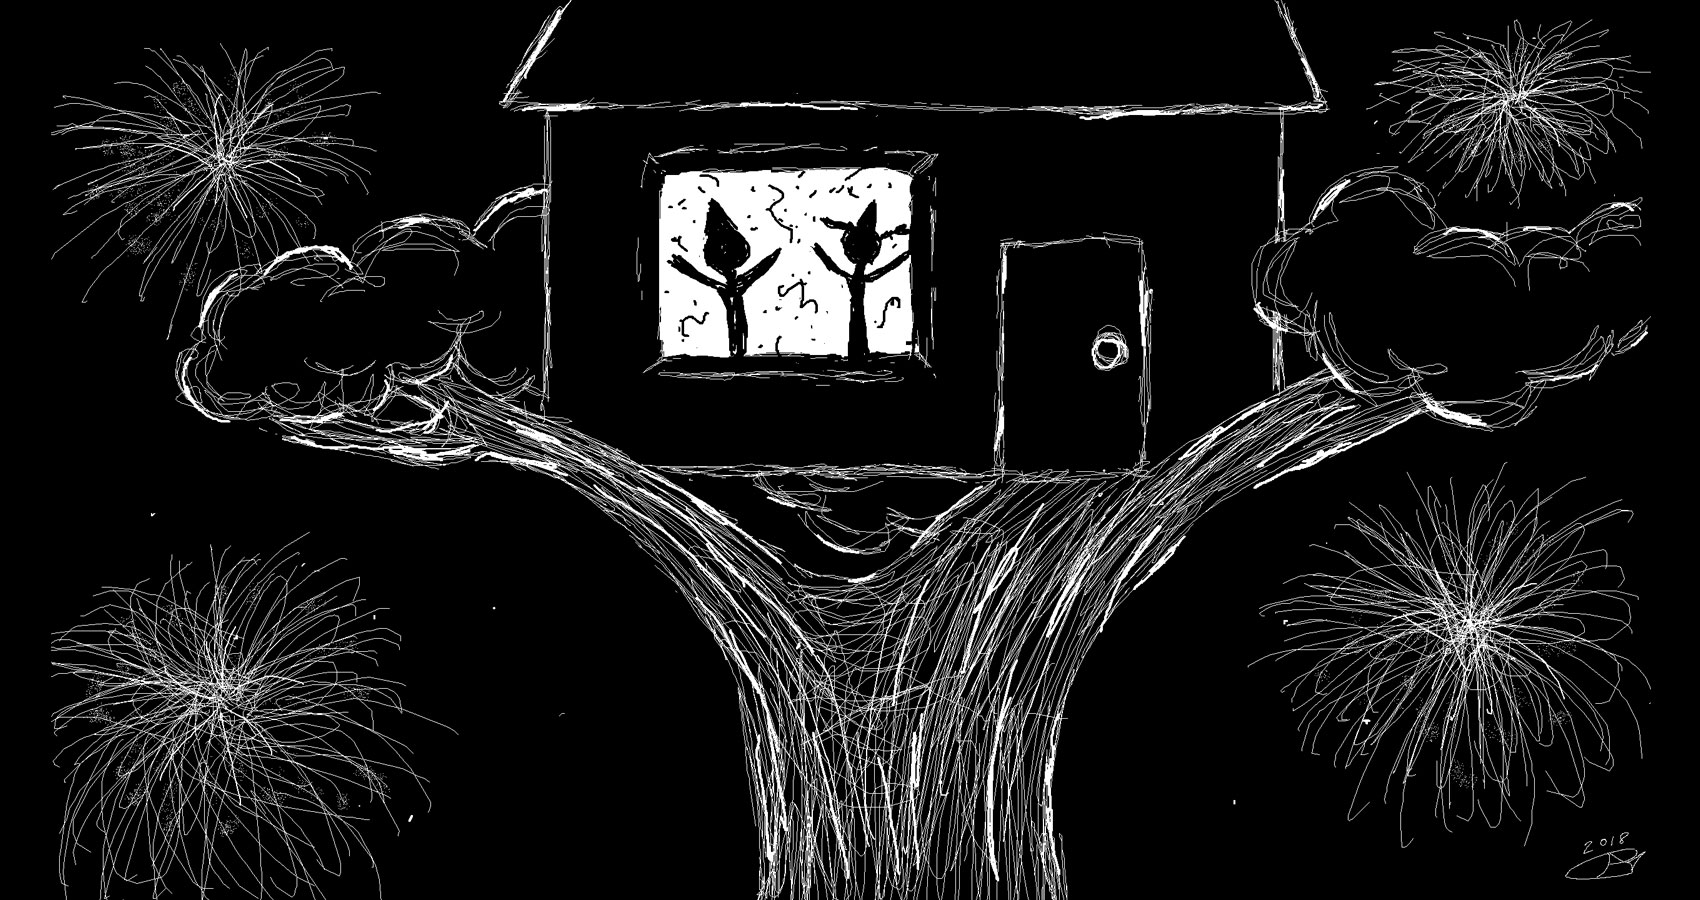 New Year's Treehouse by Robyn MacKinnon at Spillwords.com